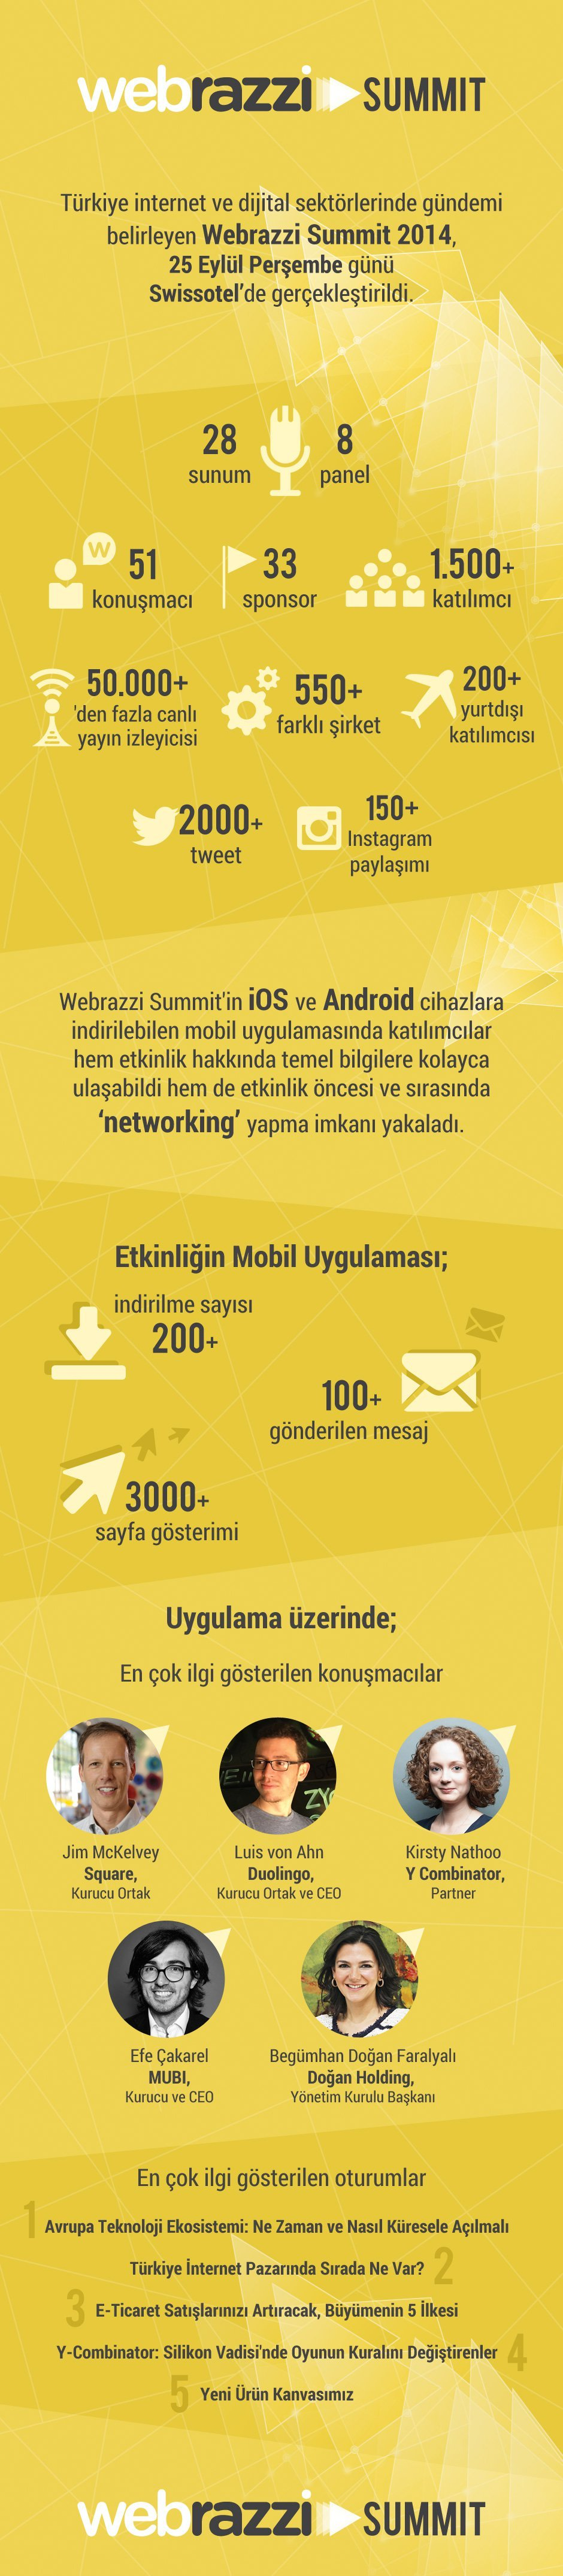 infographic_summit14_TR2